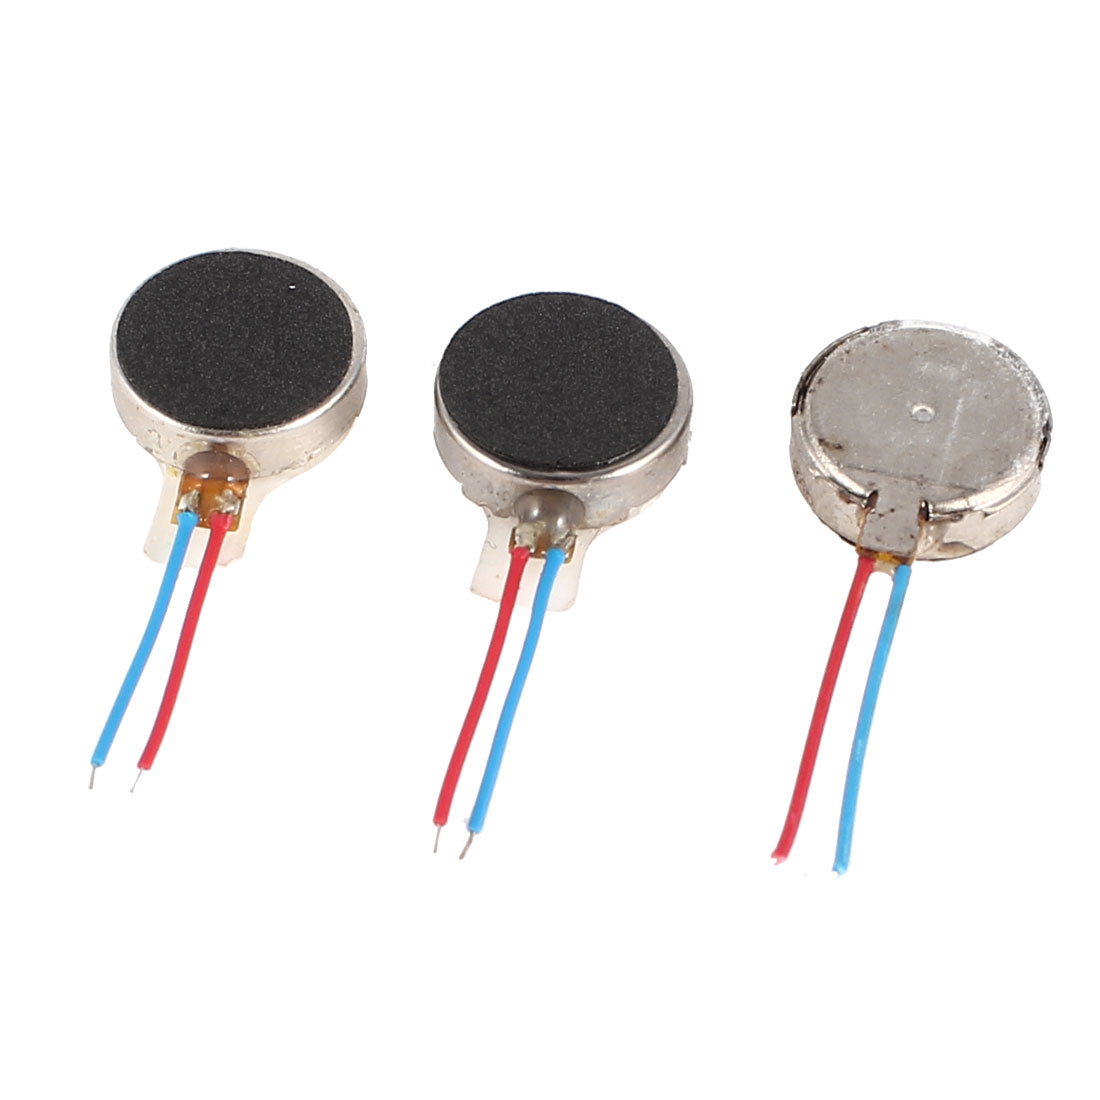 3-Pcs-10mm-x-3-4mm-DC-3V-Cell-Phone-Coin-Flat-Vibrating-Vibration-Mini-Motor